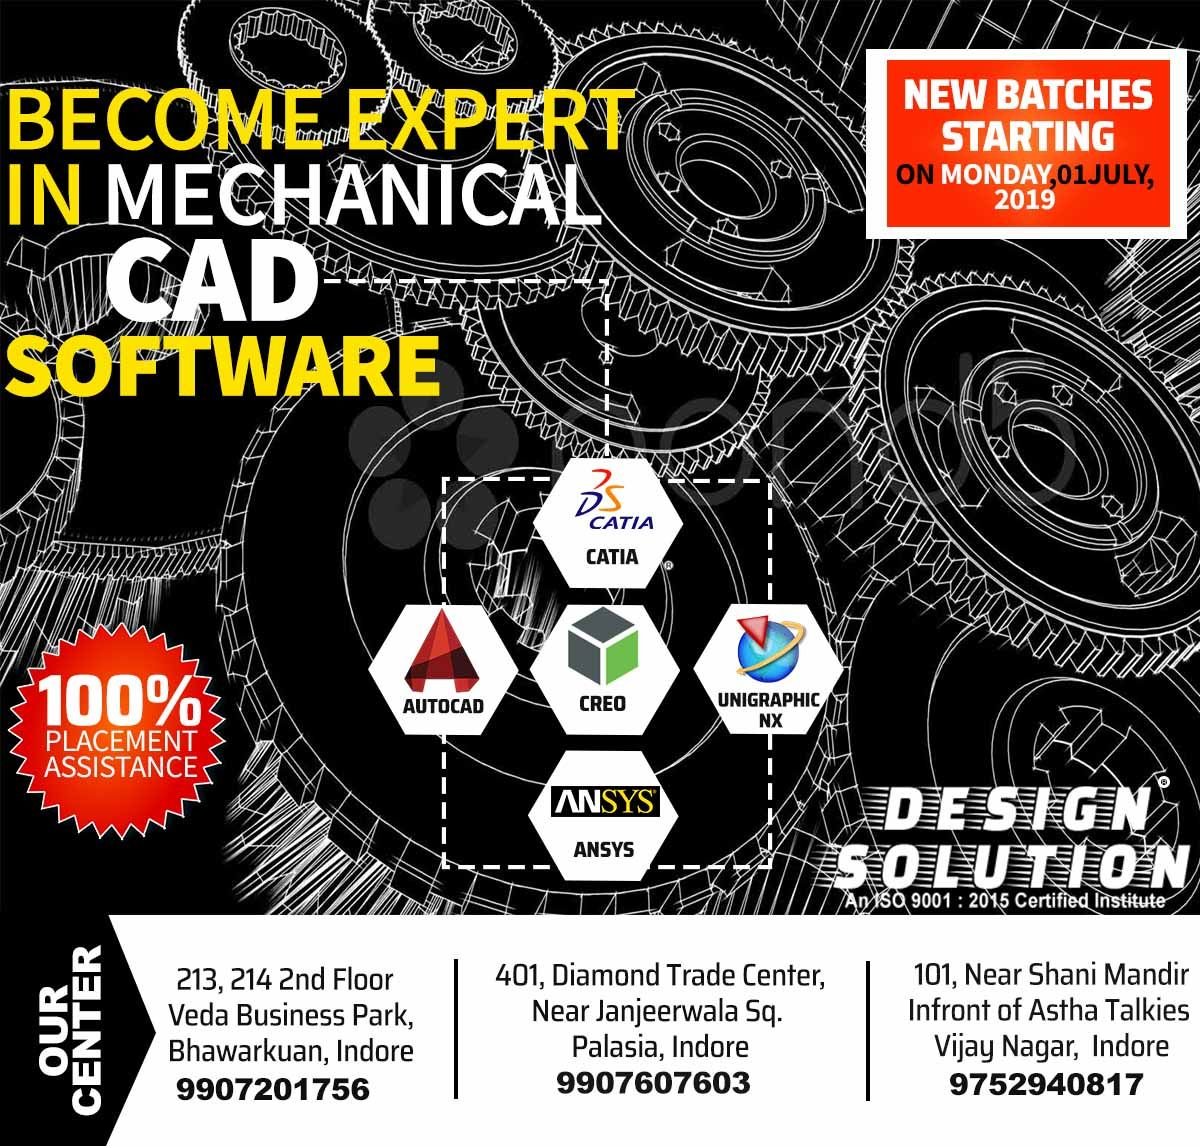 Become Expert In Mechanical Engineering Software Mechanical Engineering Software Mechanical Engineering Engineering Memes